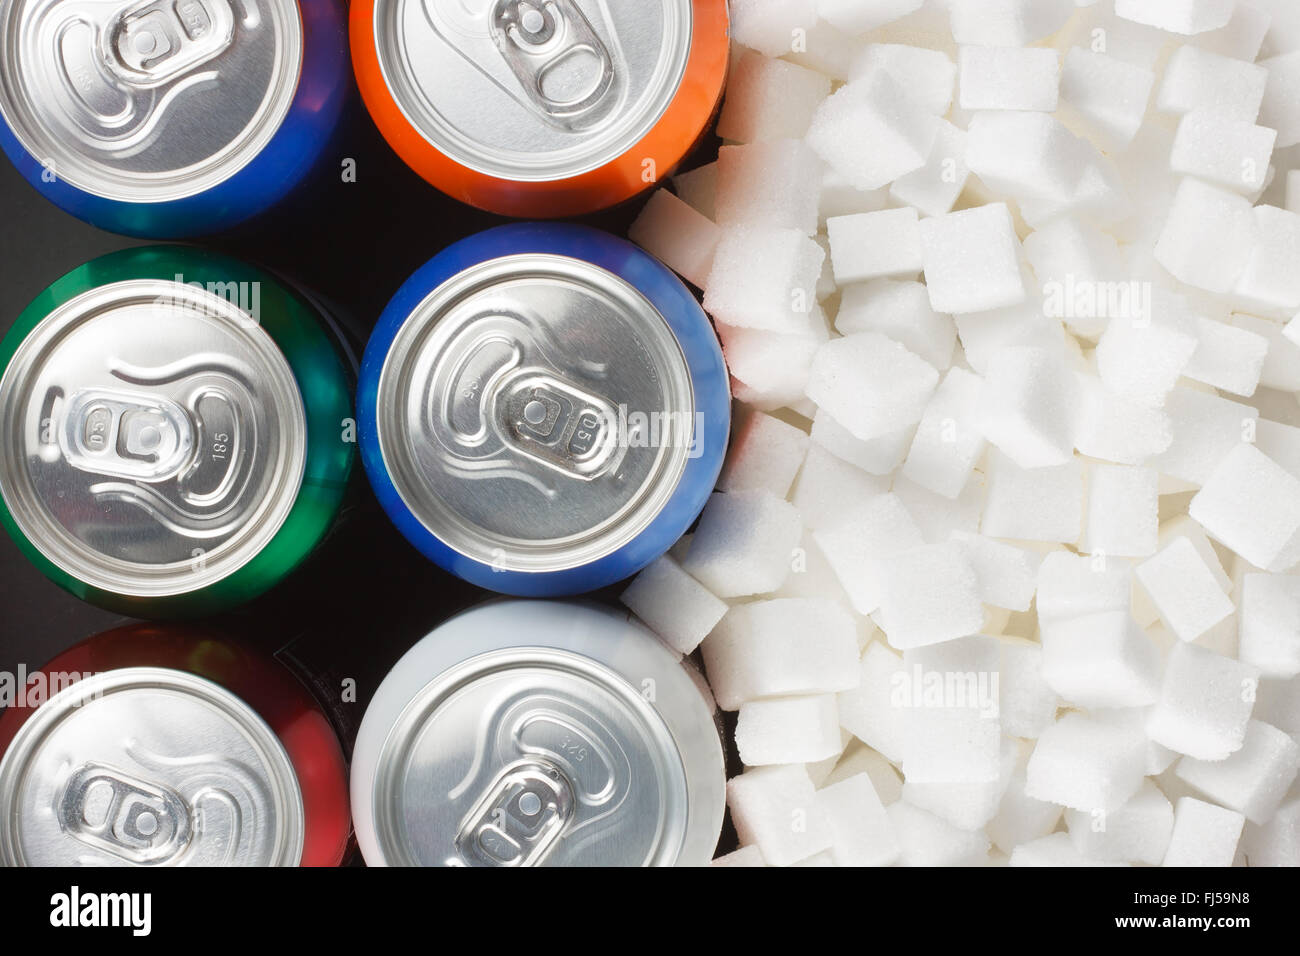 Unhealthy food concept - sugar in carbonated drinks. Sugar cubes as background and canned drink - Stock Image